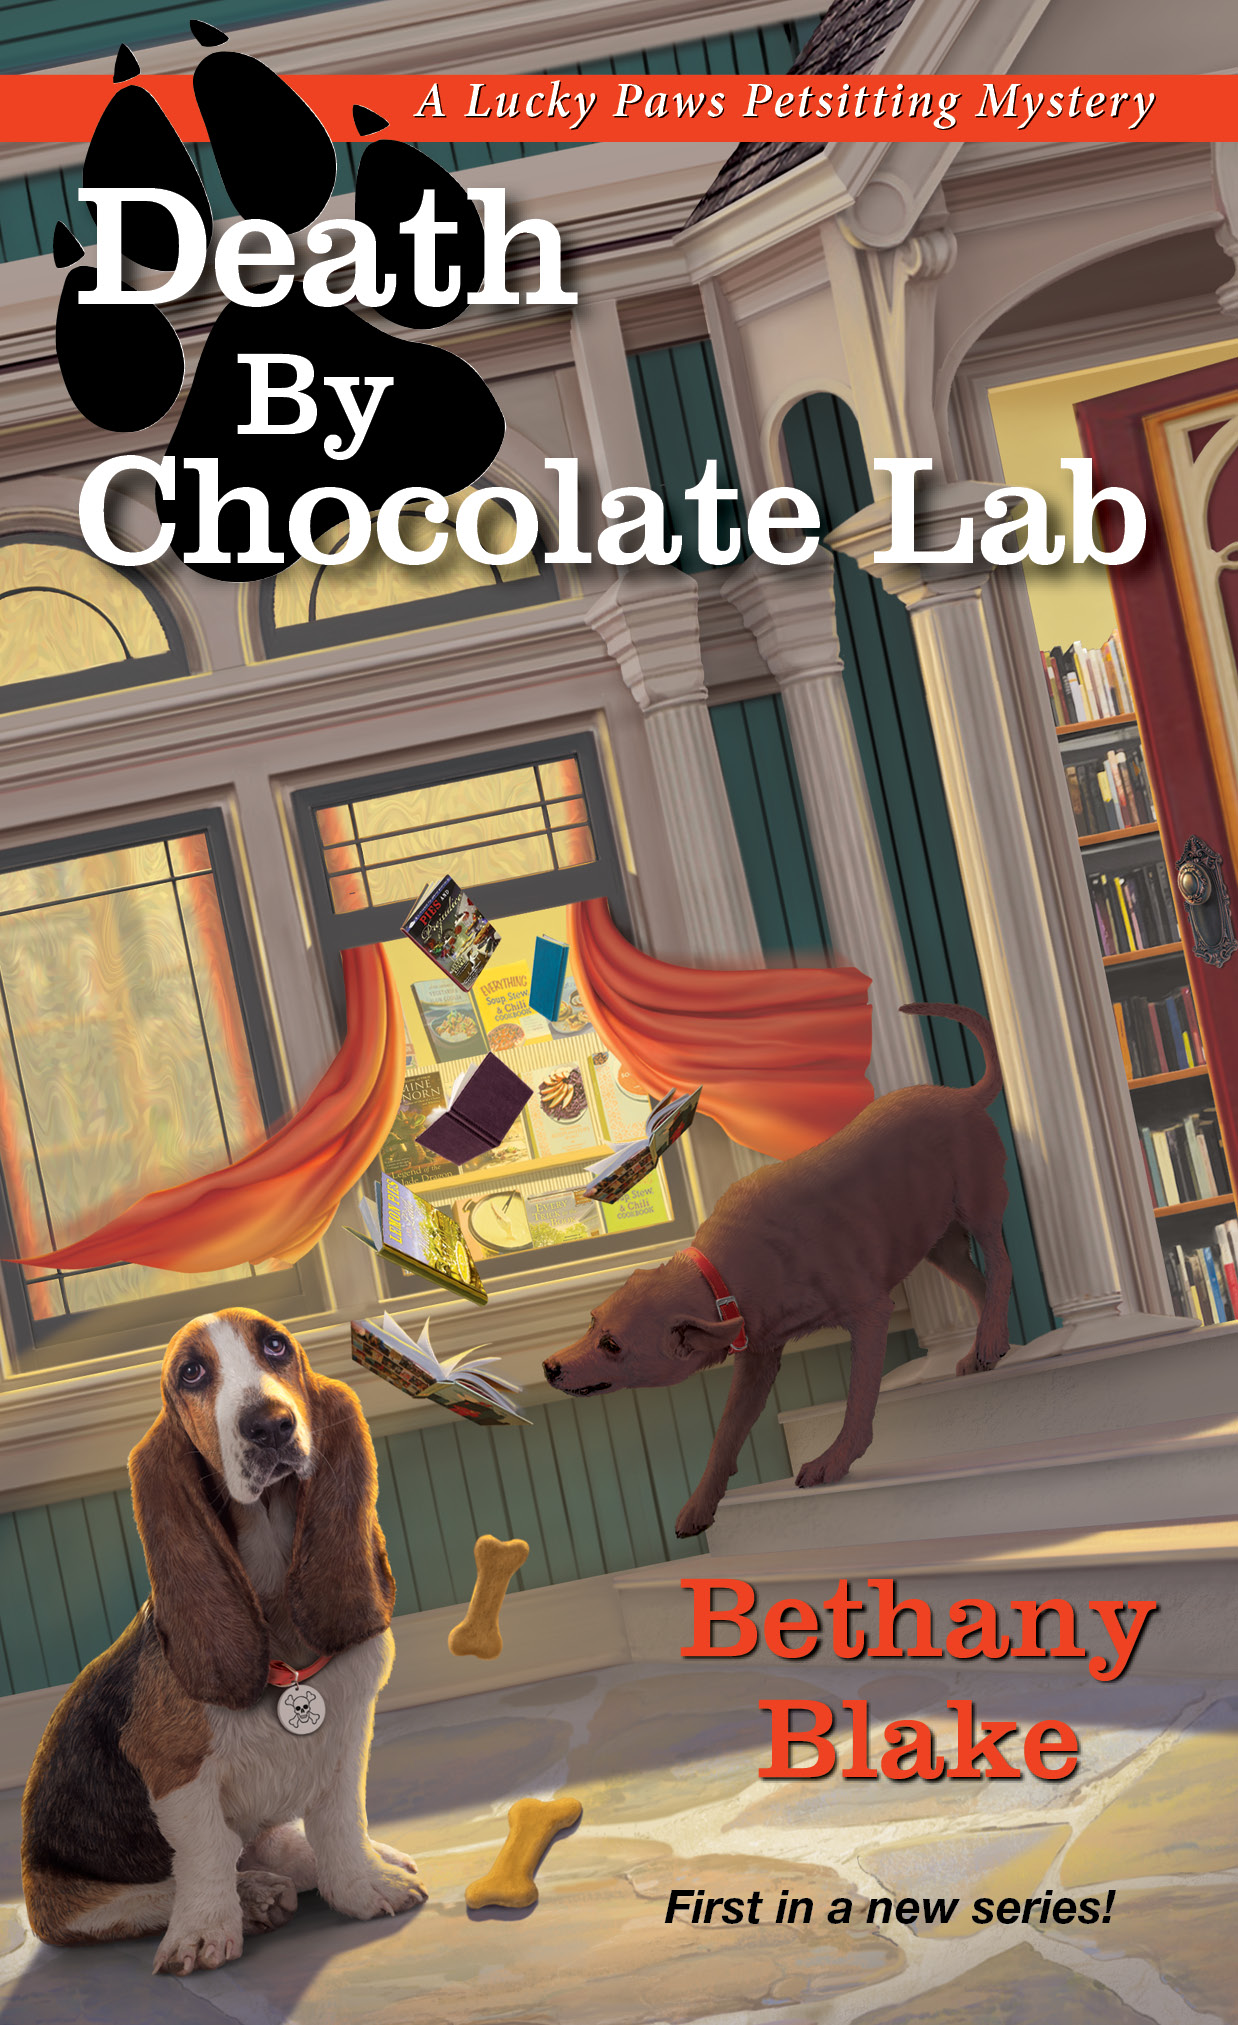 Death By Chocolate Lab comp.jpg